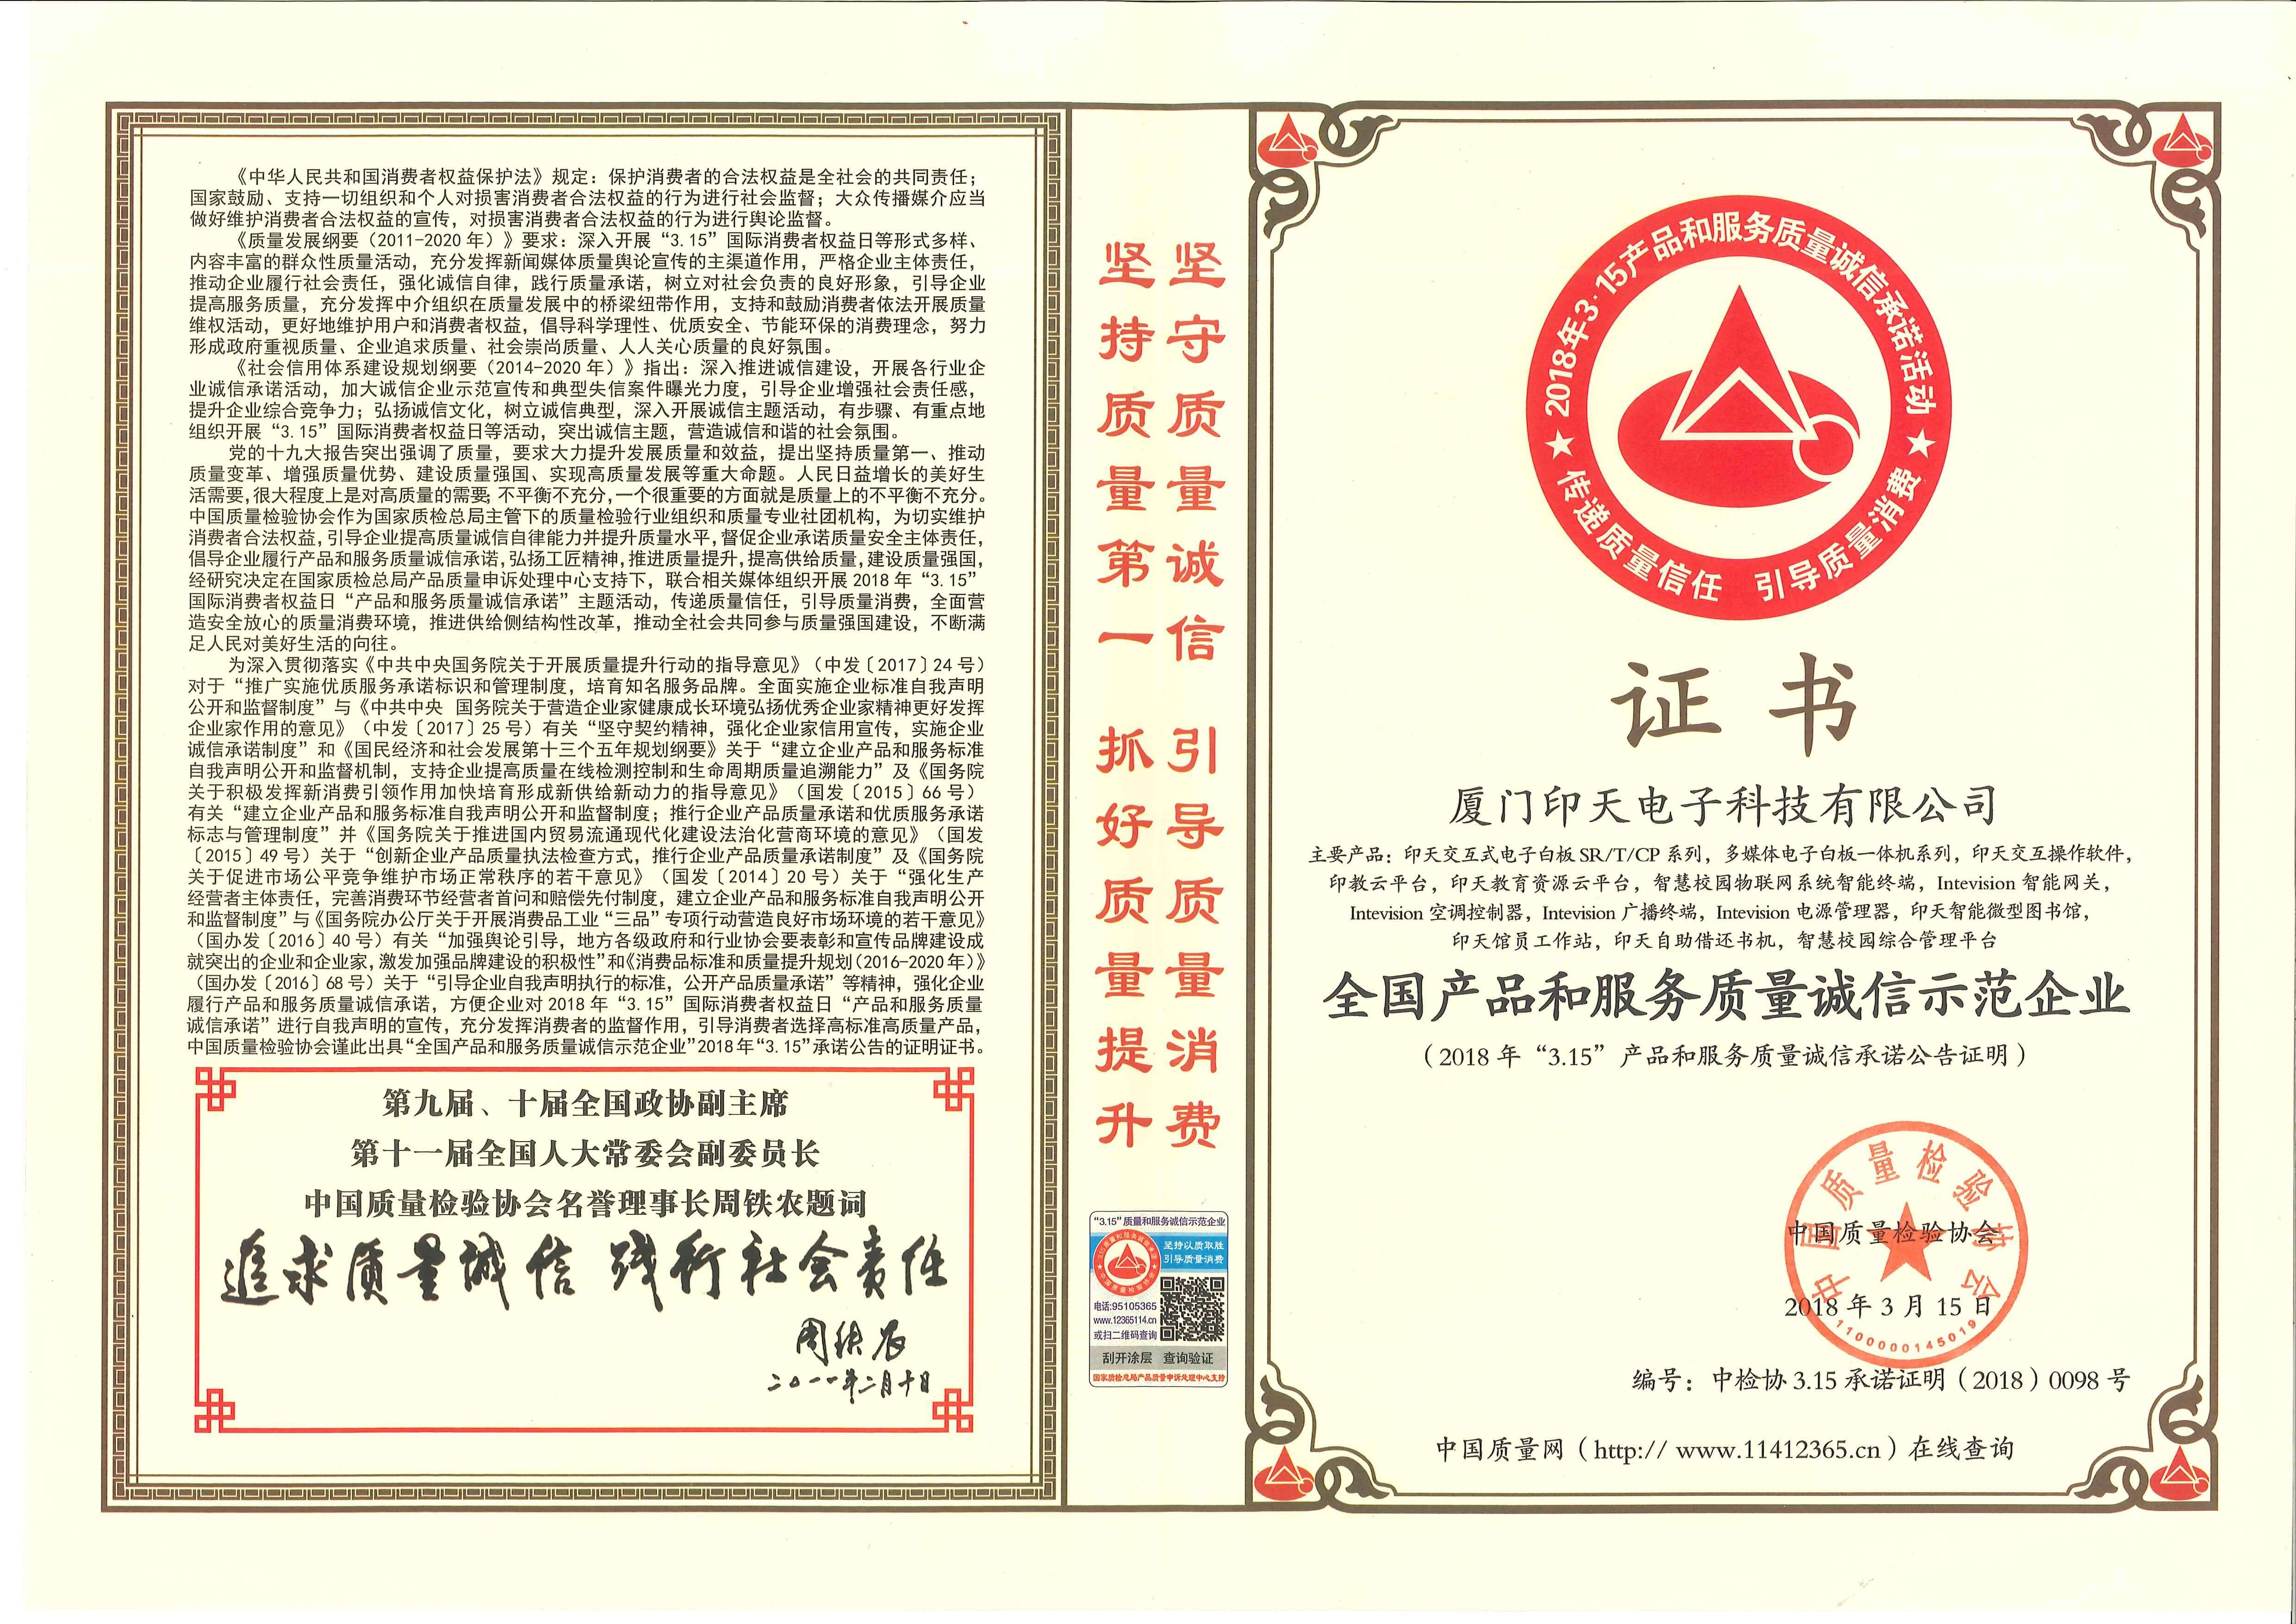 INTECH gain recognition from the China Association for Quality Inspection.